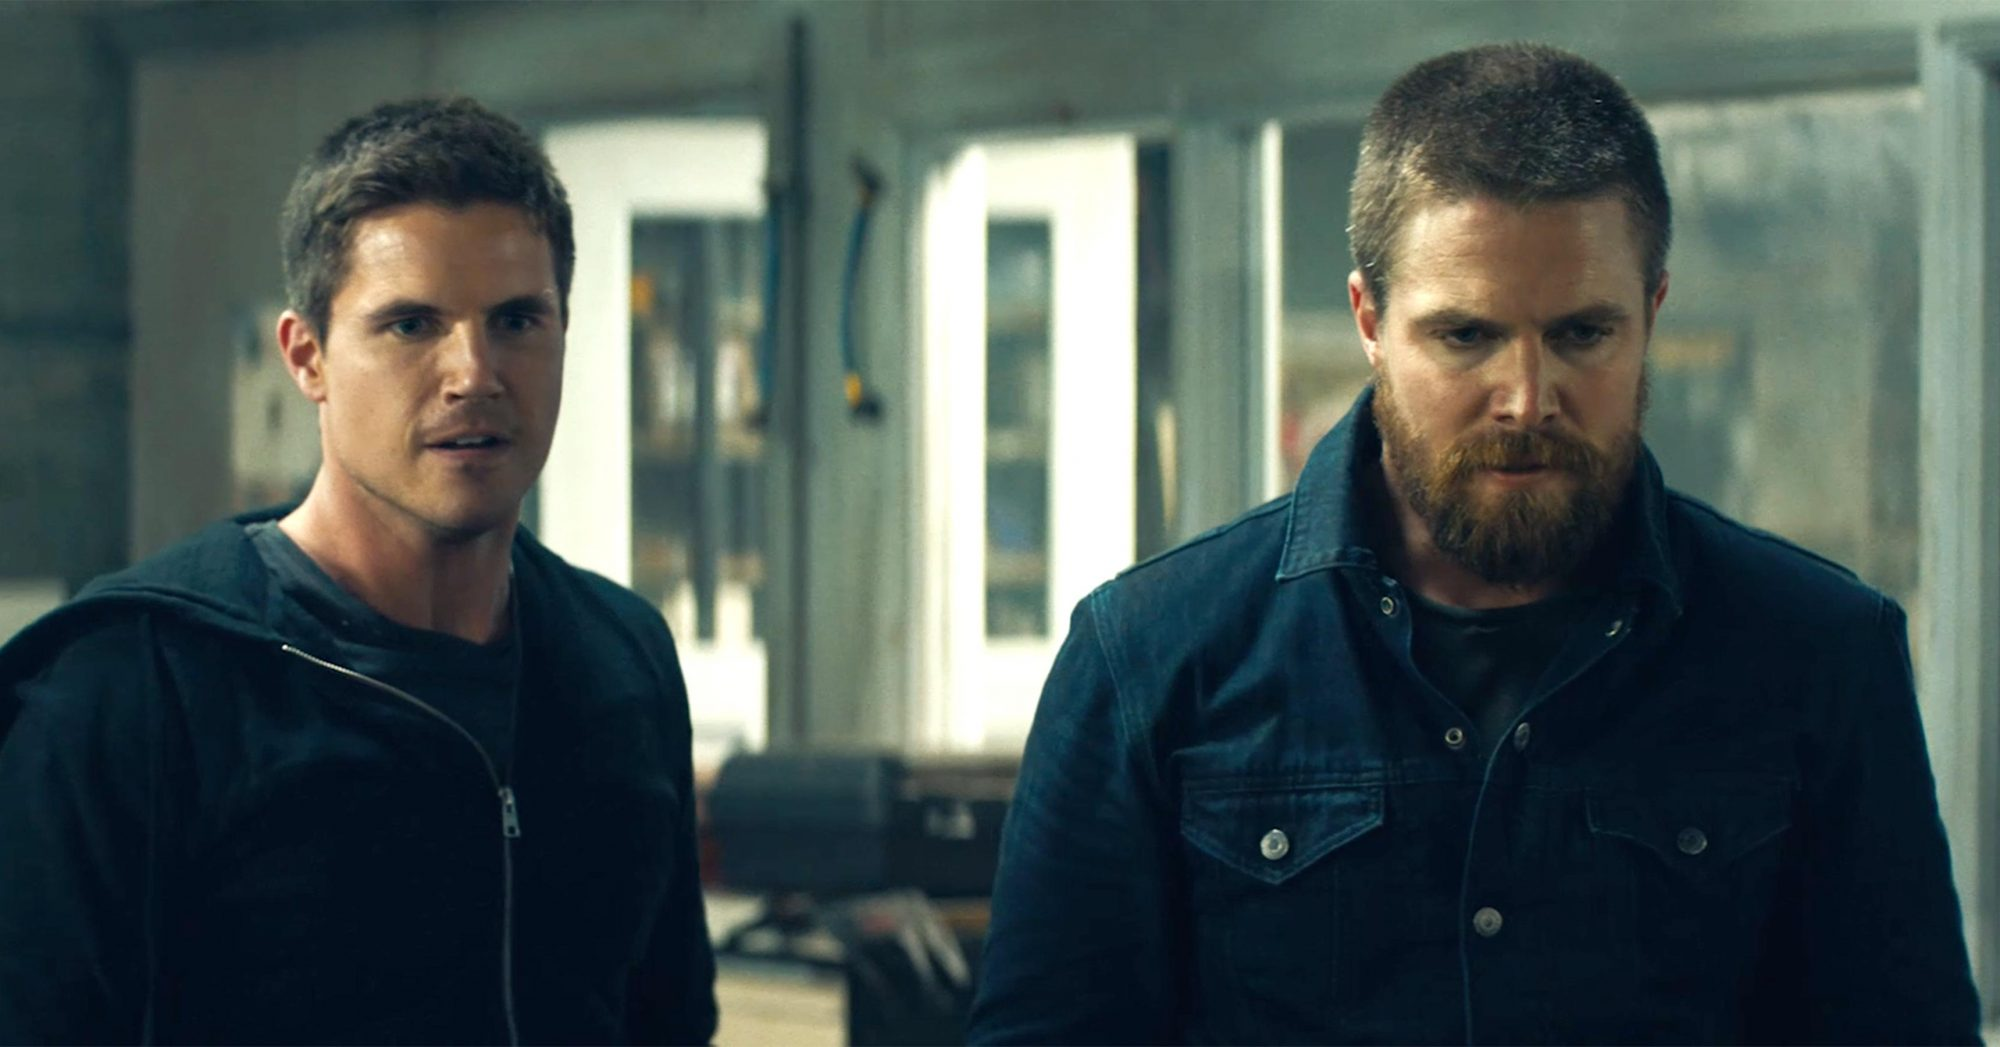 Deadline is exclusively reporting that cousins Robbie Amell and Stephen Amell are set to reprise their roles in Code 8: Part II, the sequel to the crowd-funded original film from 2019, with original director Jeff Chan also returning to helm the film.